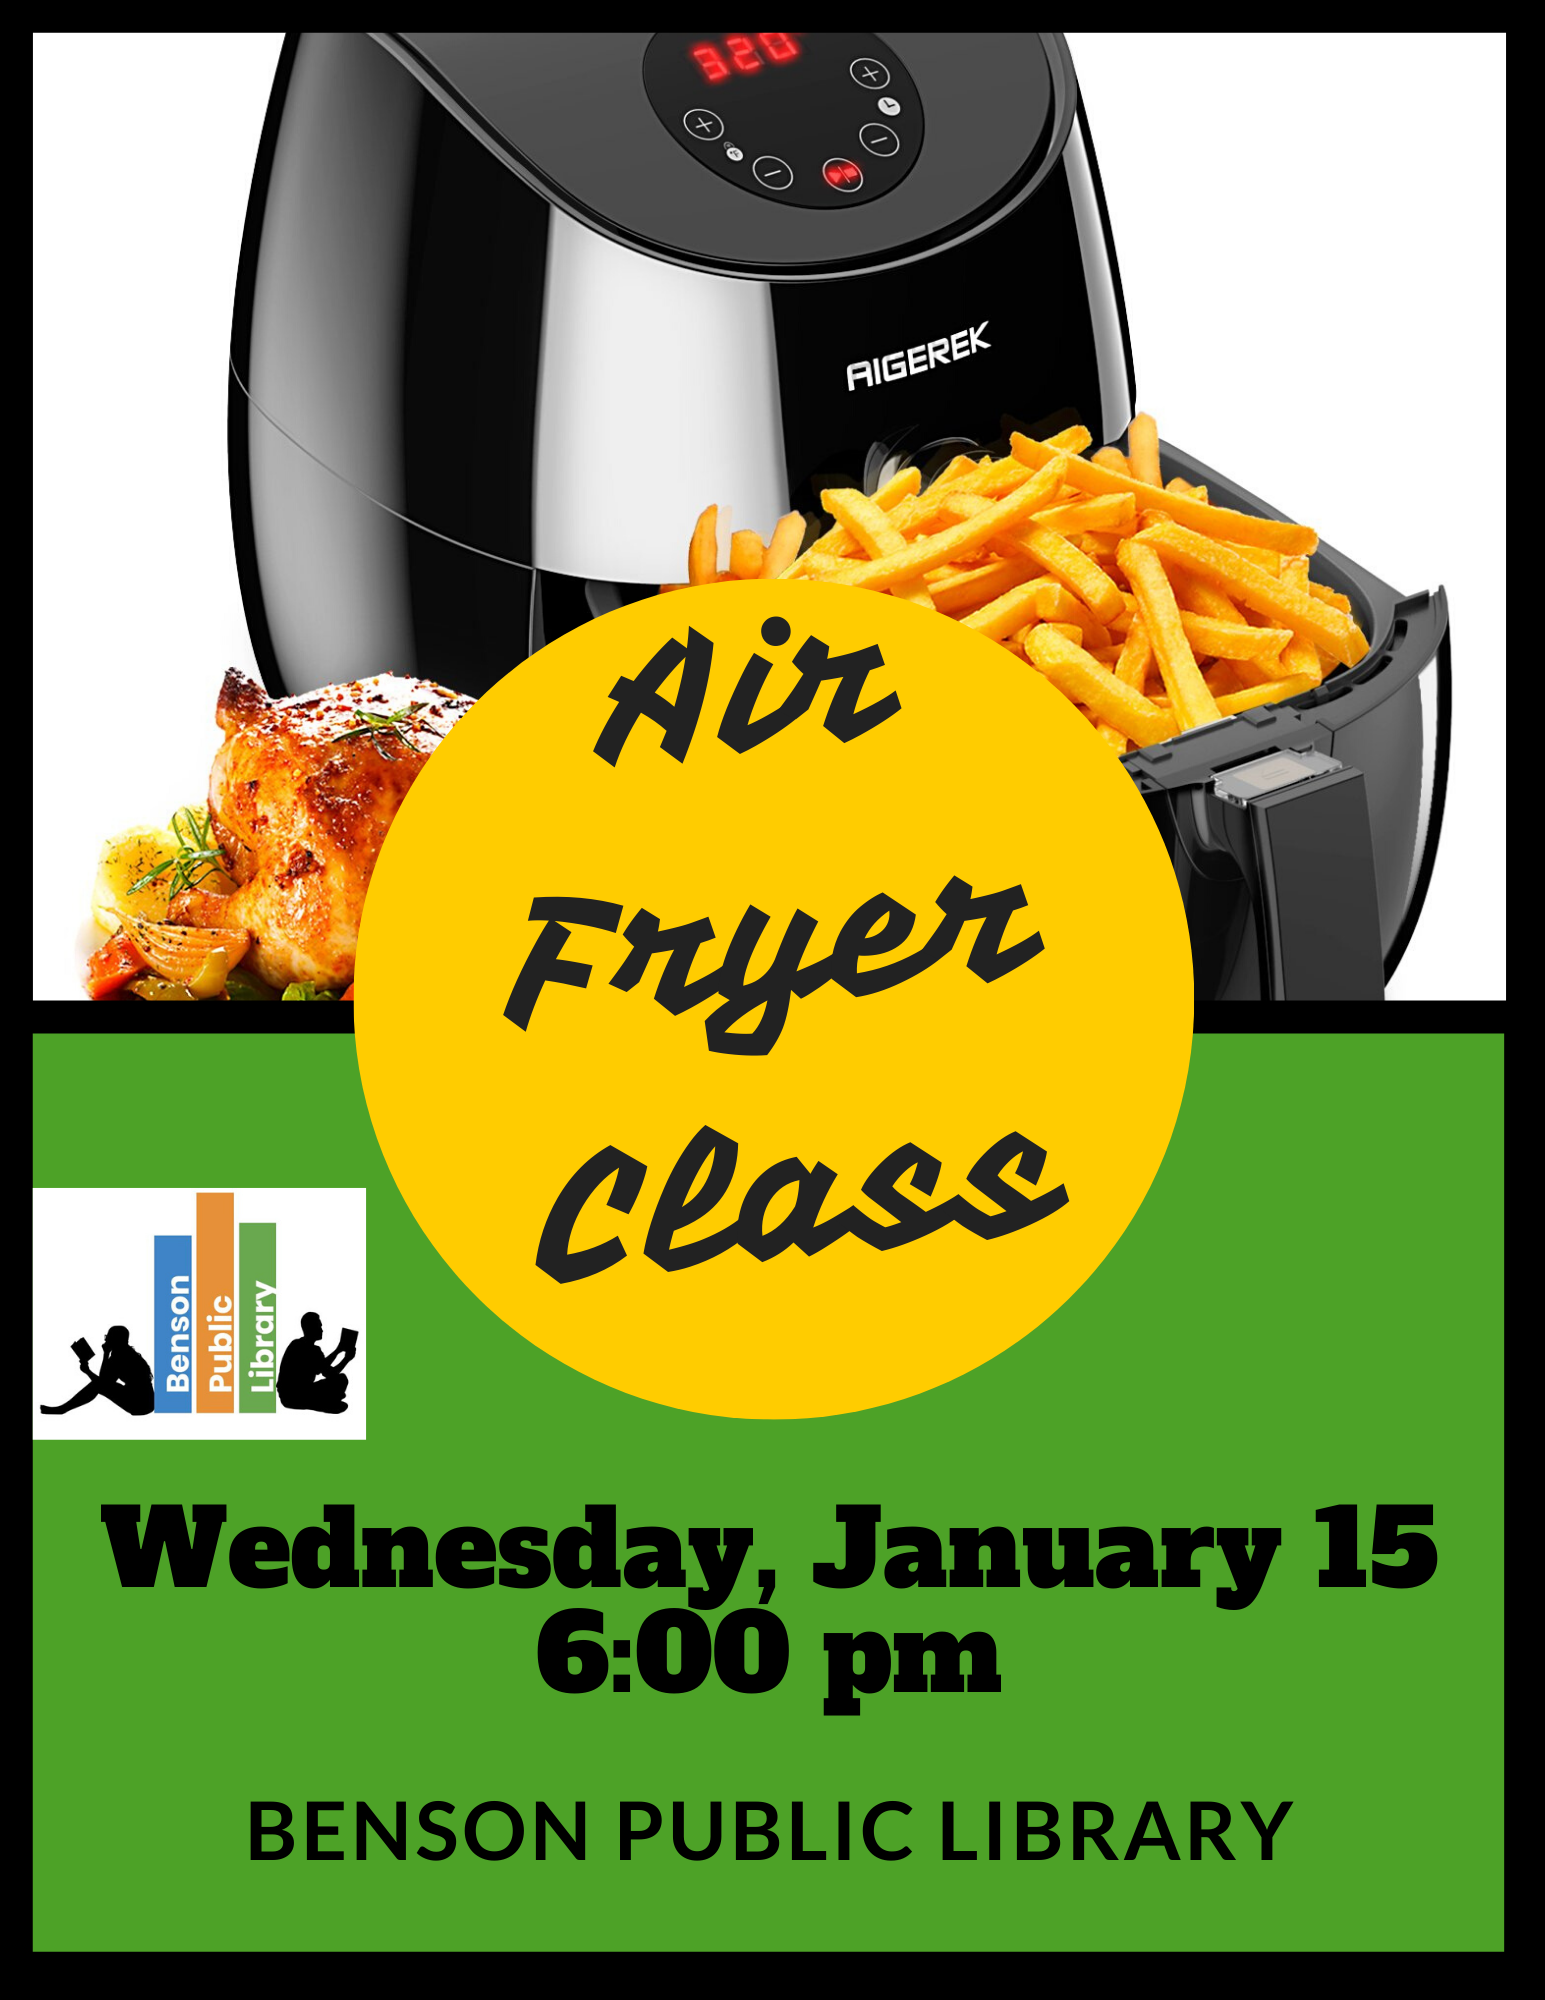 We will be offering a Air Fryer class on Wednesday, January 15 at 6 pm. Learn techniques and tricks of an air fryer. We are asking for registration.